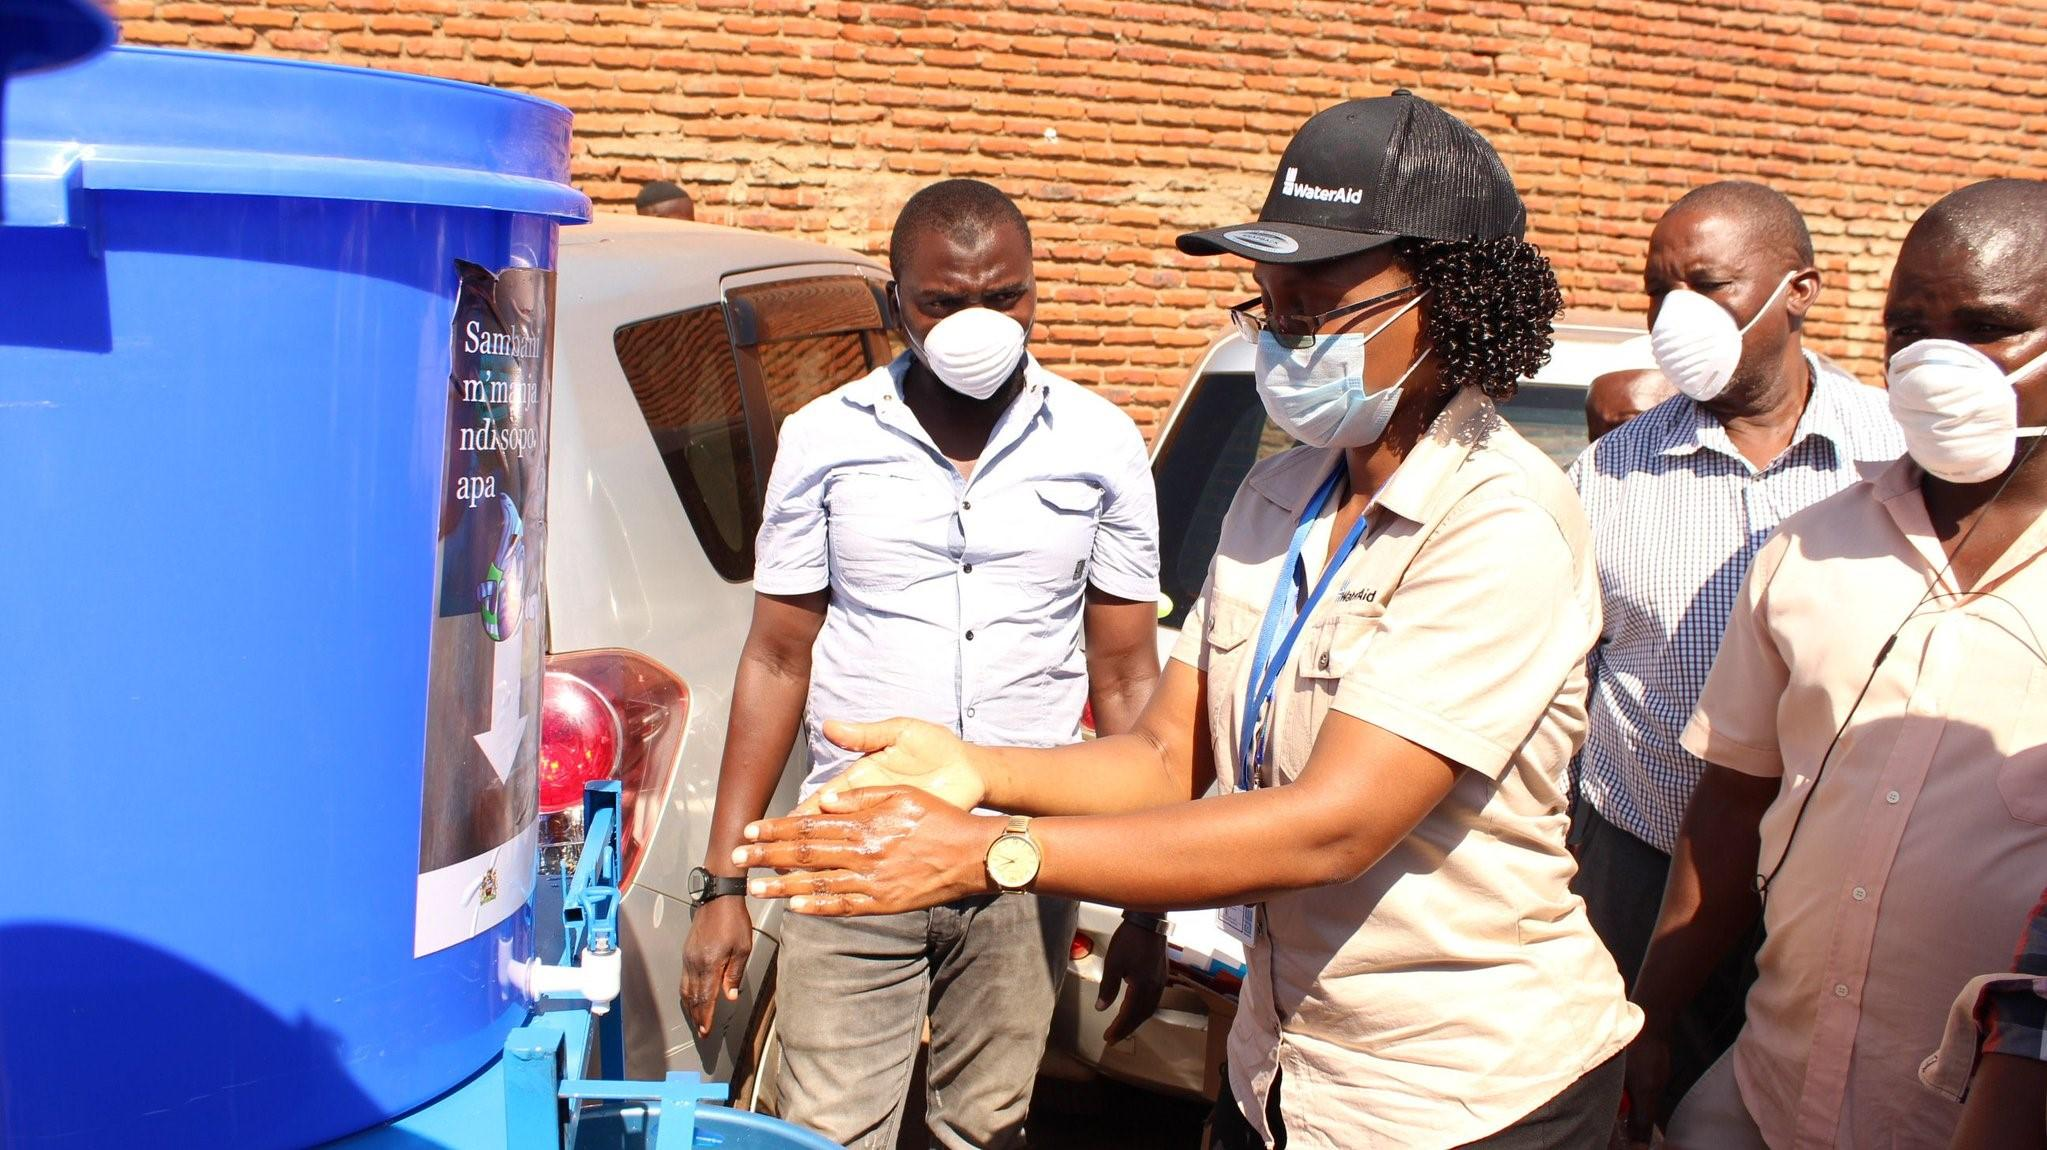 WaterAid Malawi distributed handwashing facilities + supplies to Bwaila Hospital and Lilongwe Main Market along with literature promoting proper hygiene to help prevent the spread of COVID-19. COVID-19 response. Malawi. April 2020